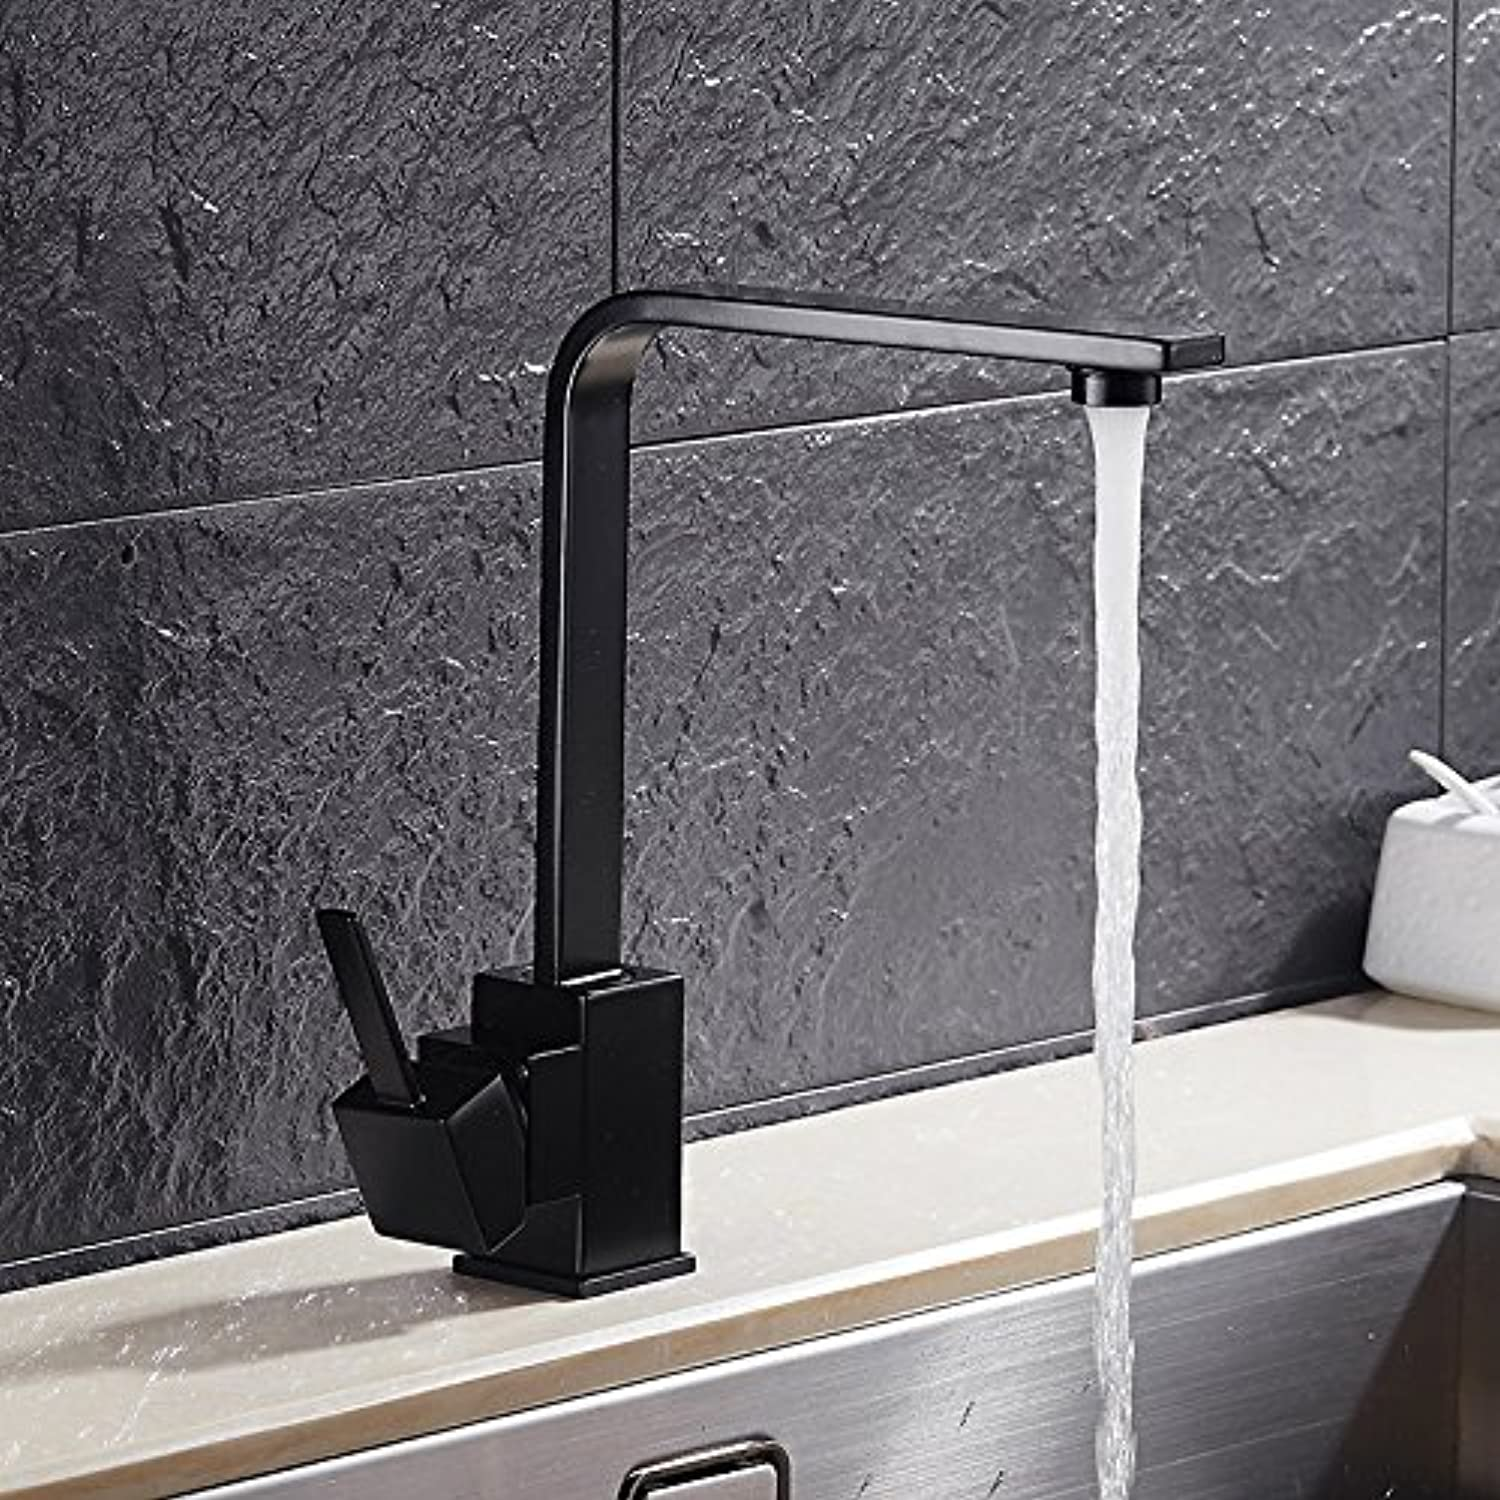 redOOY Faucet Taps Faucet Square Flat Tube Kitchen Faucet Sink Basin Above Counter Basin Hot And Cold Mixing Faucet Square Flat Tube redating Water